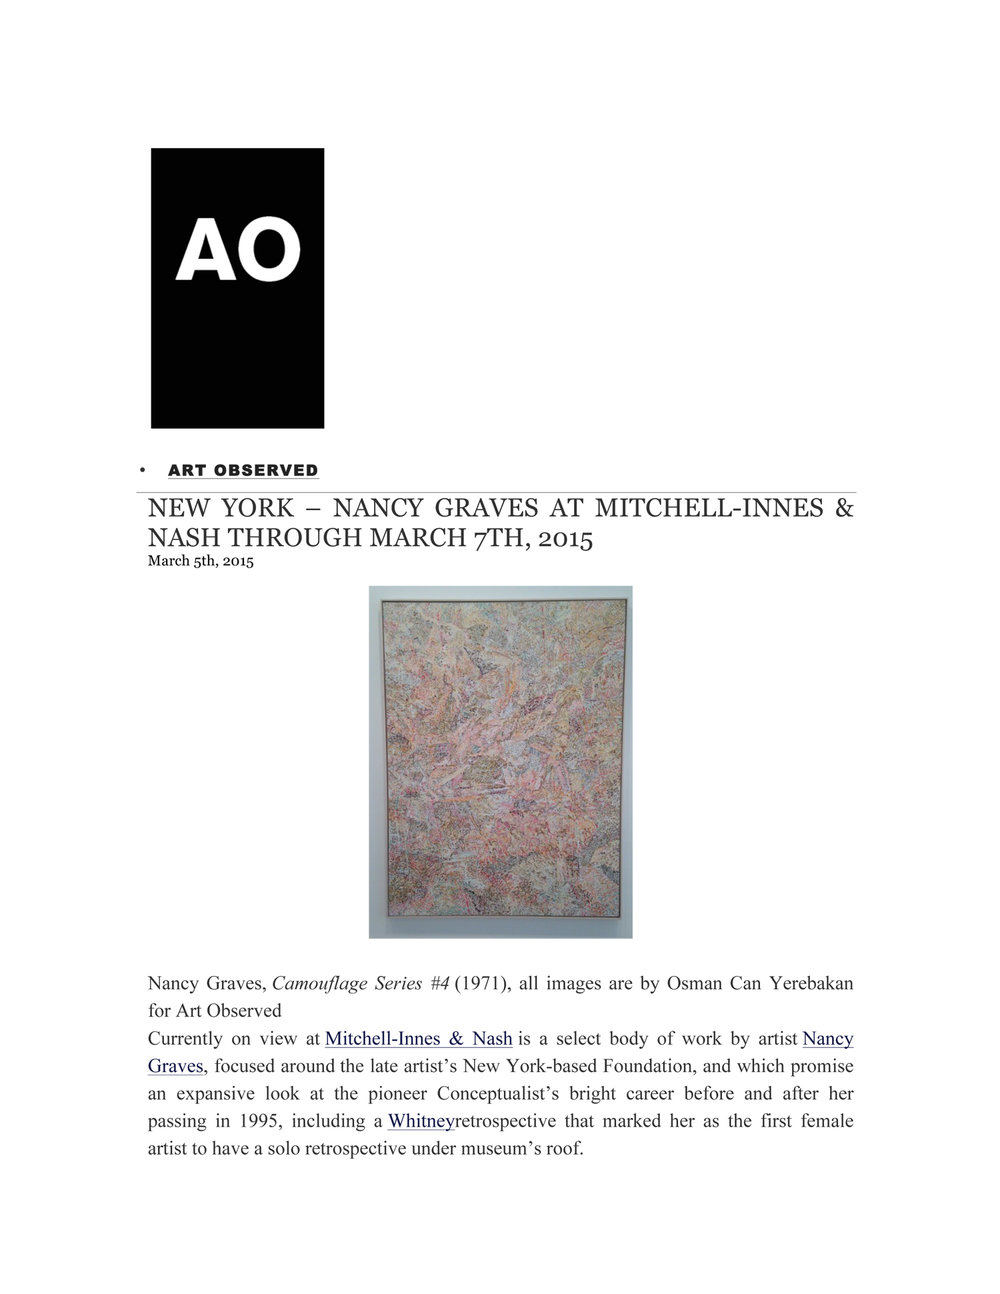 Nancy Graves , review by O.C. Yerebakan, Art Observed, March 2015